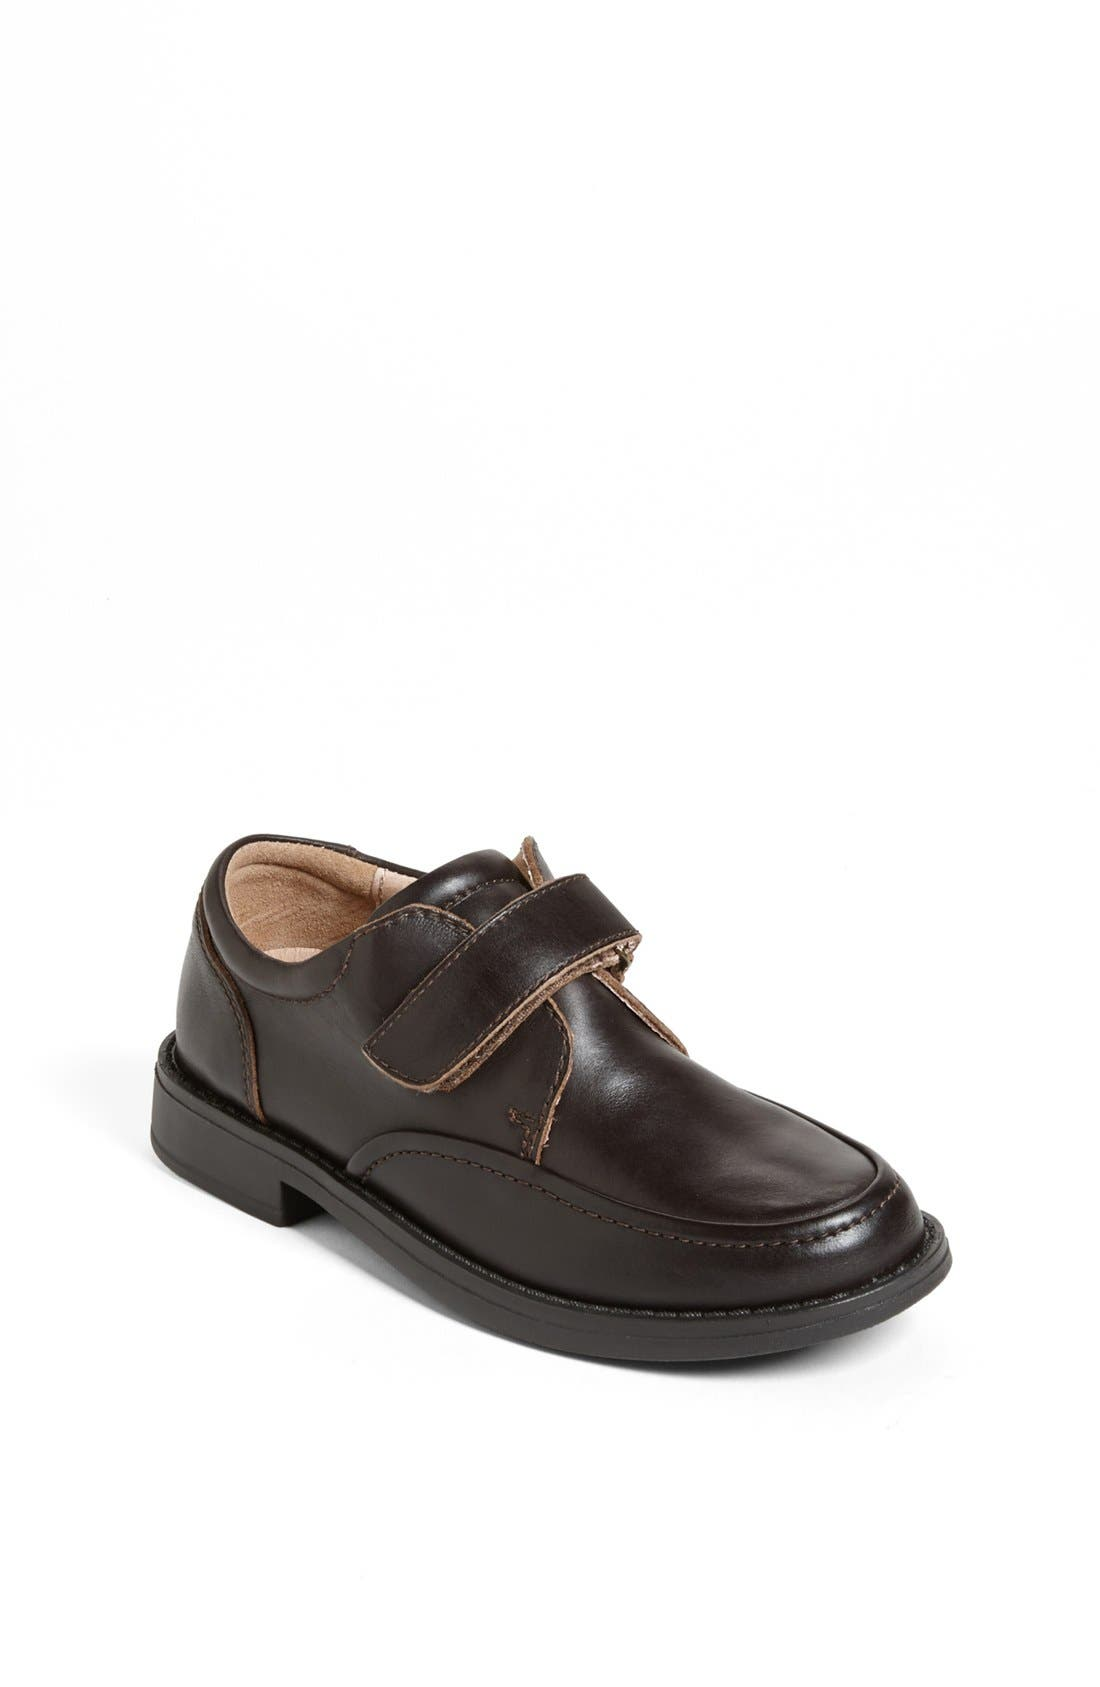 Main Image - Cole Haan 'Air Ace' Loafer (Toddler, Little Kid & Big Kid)